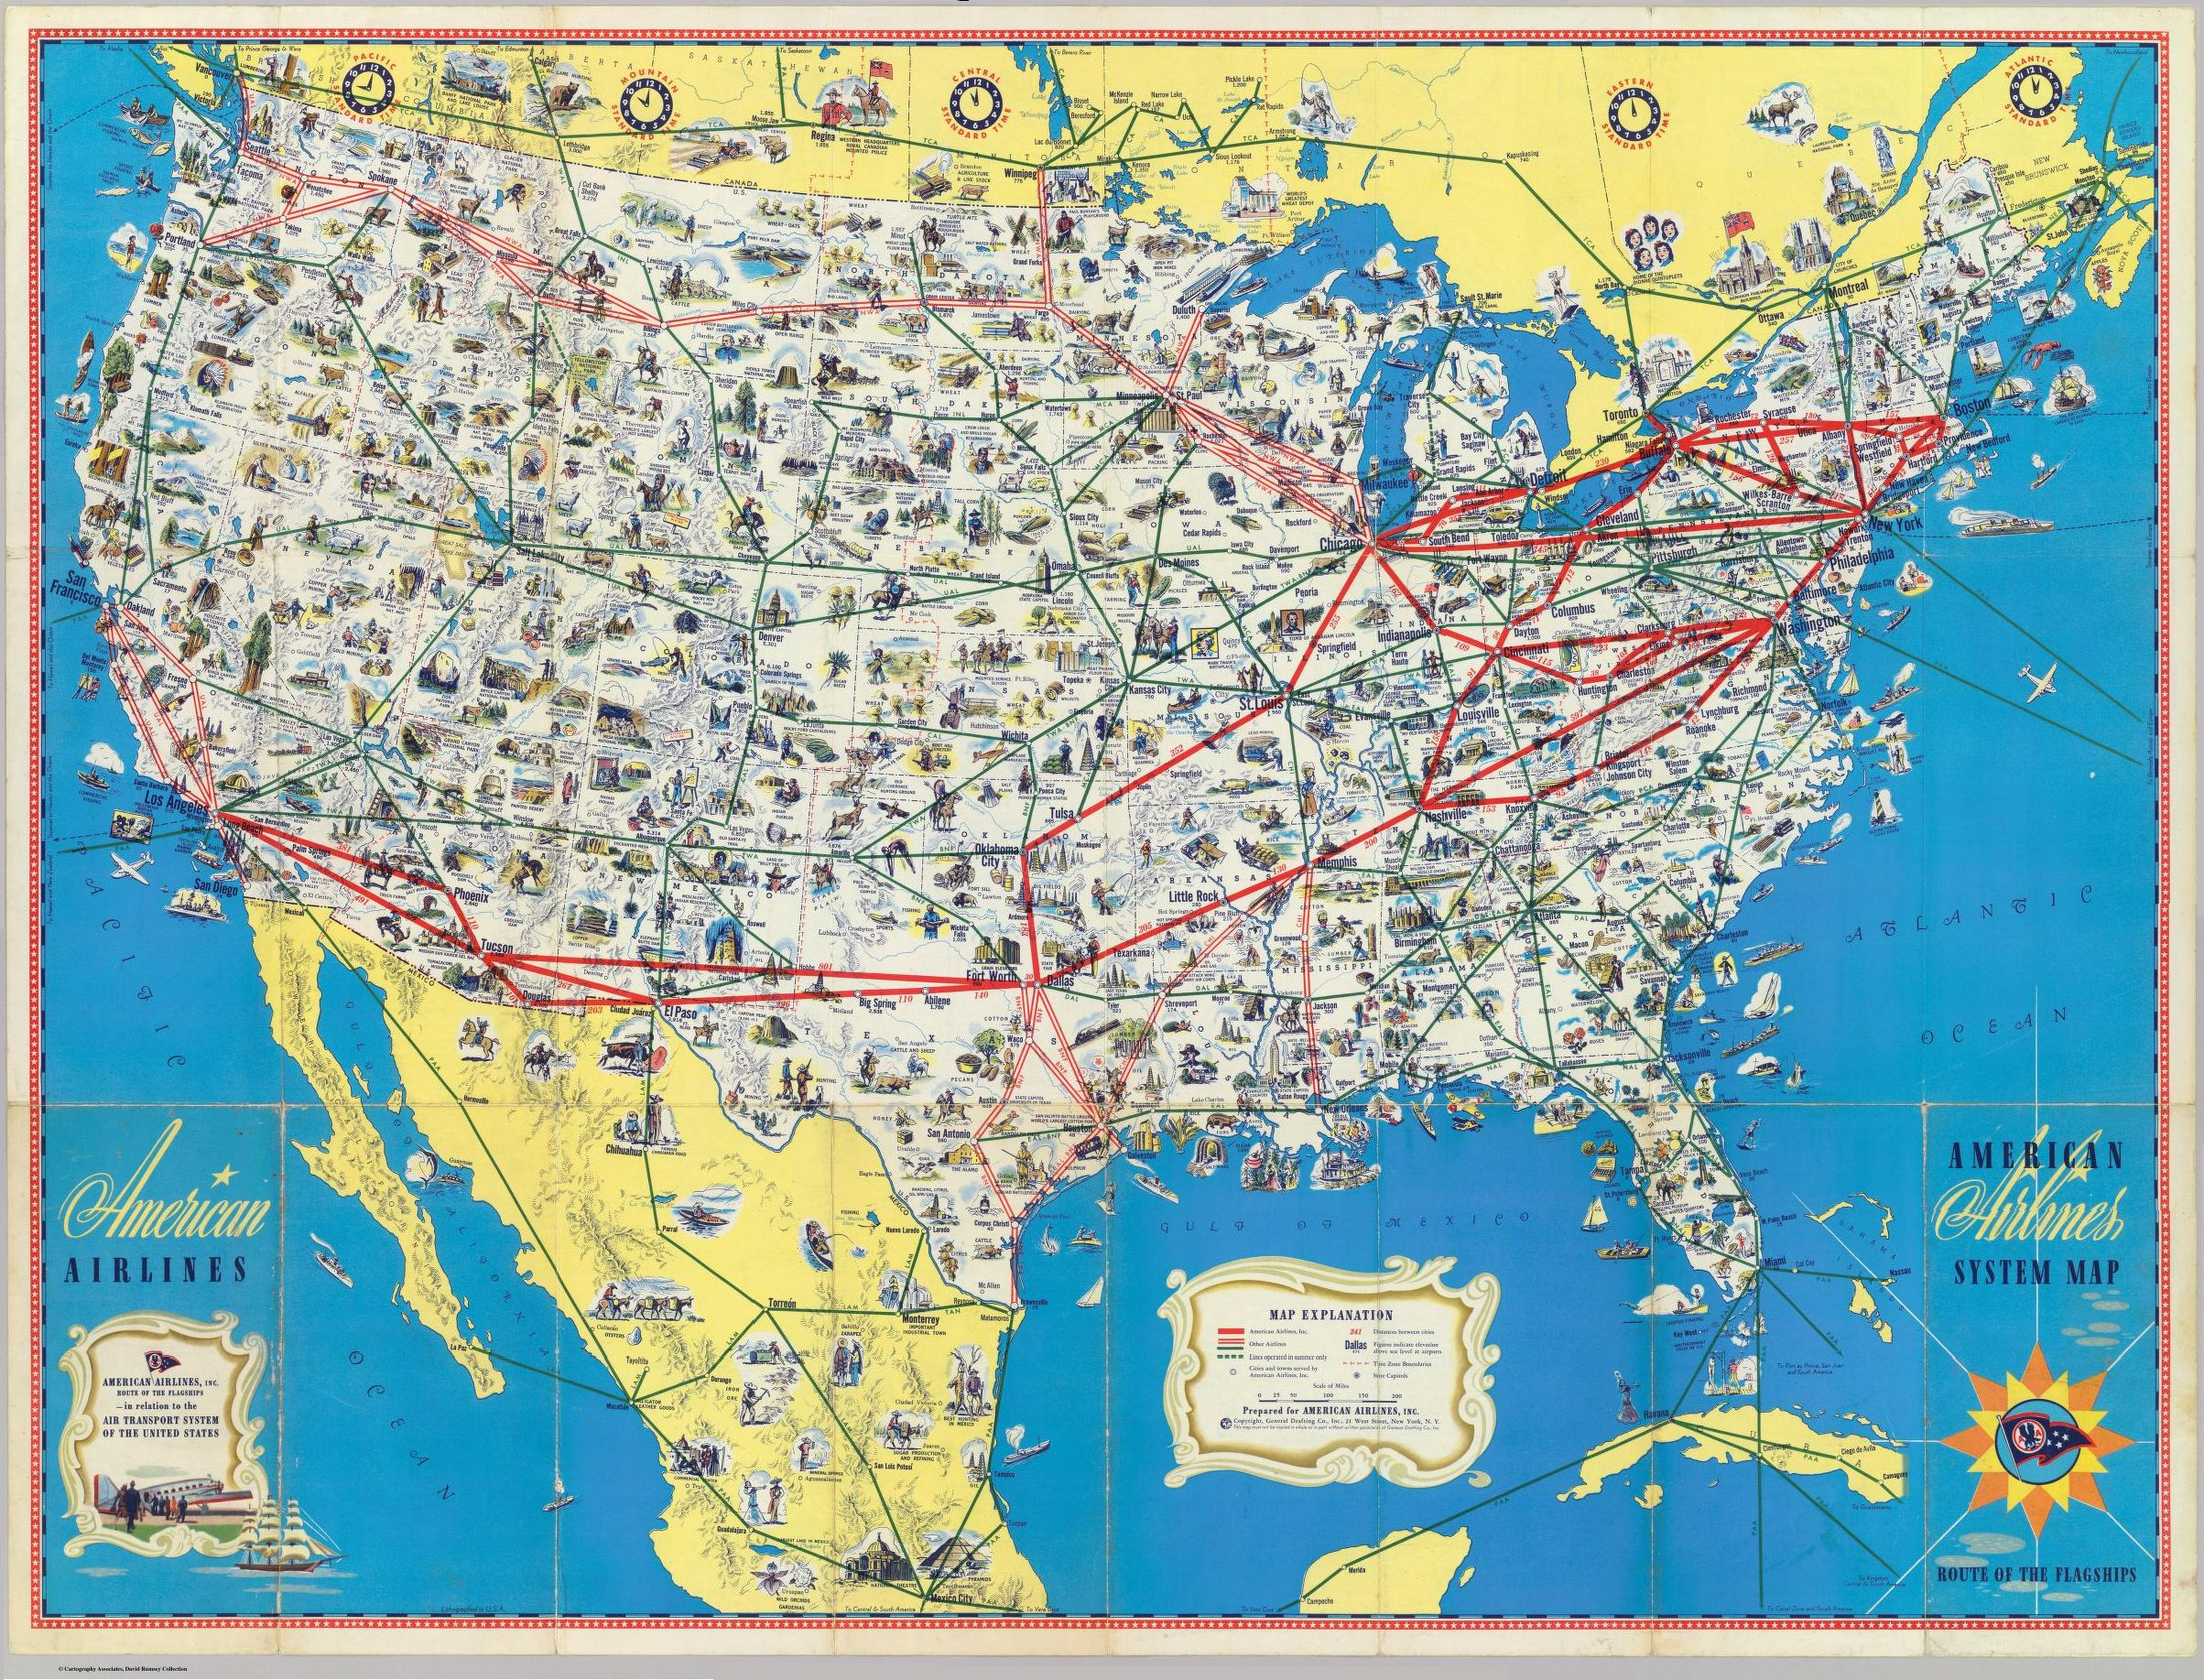 American Airlines Inc. - Overview map, Bo Justusson